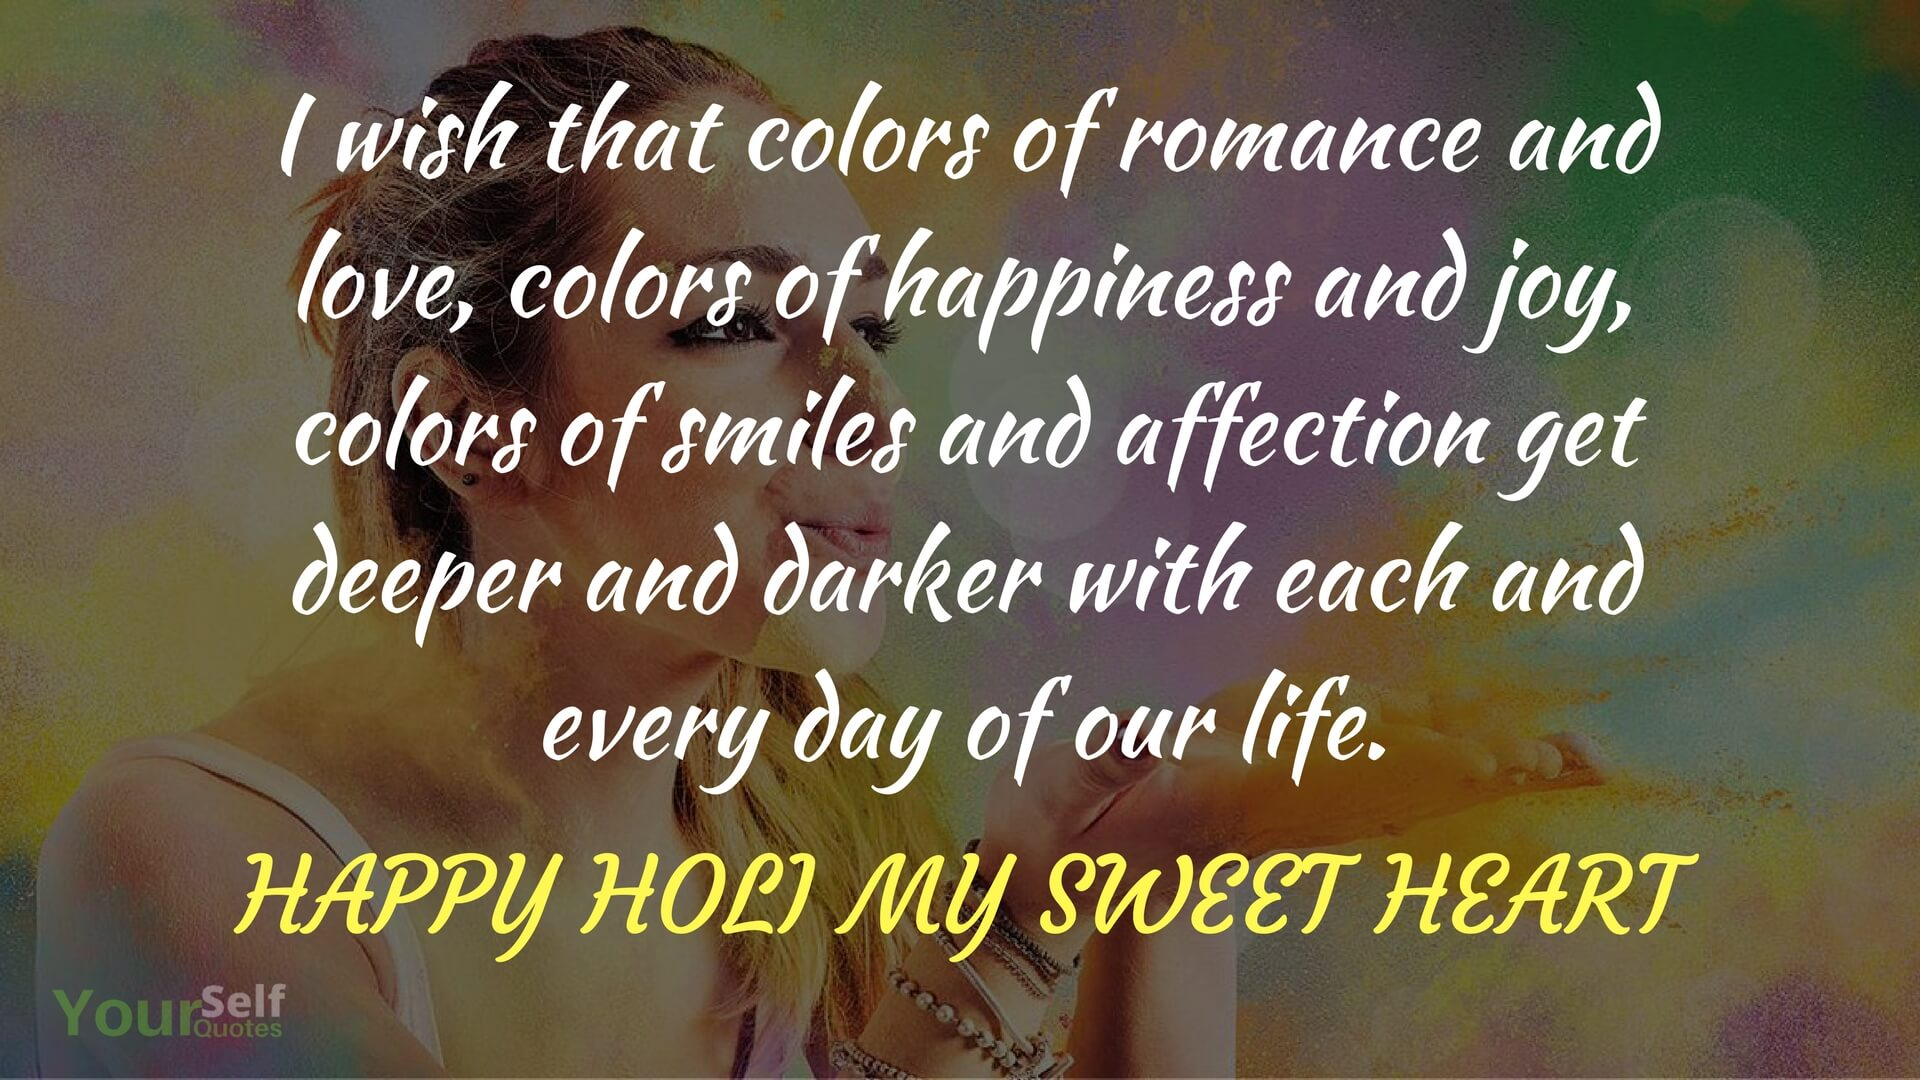 Wishing Holi Images Download